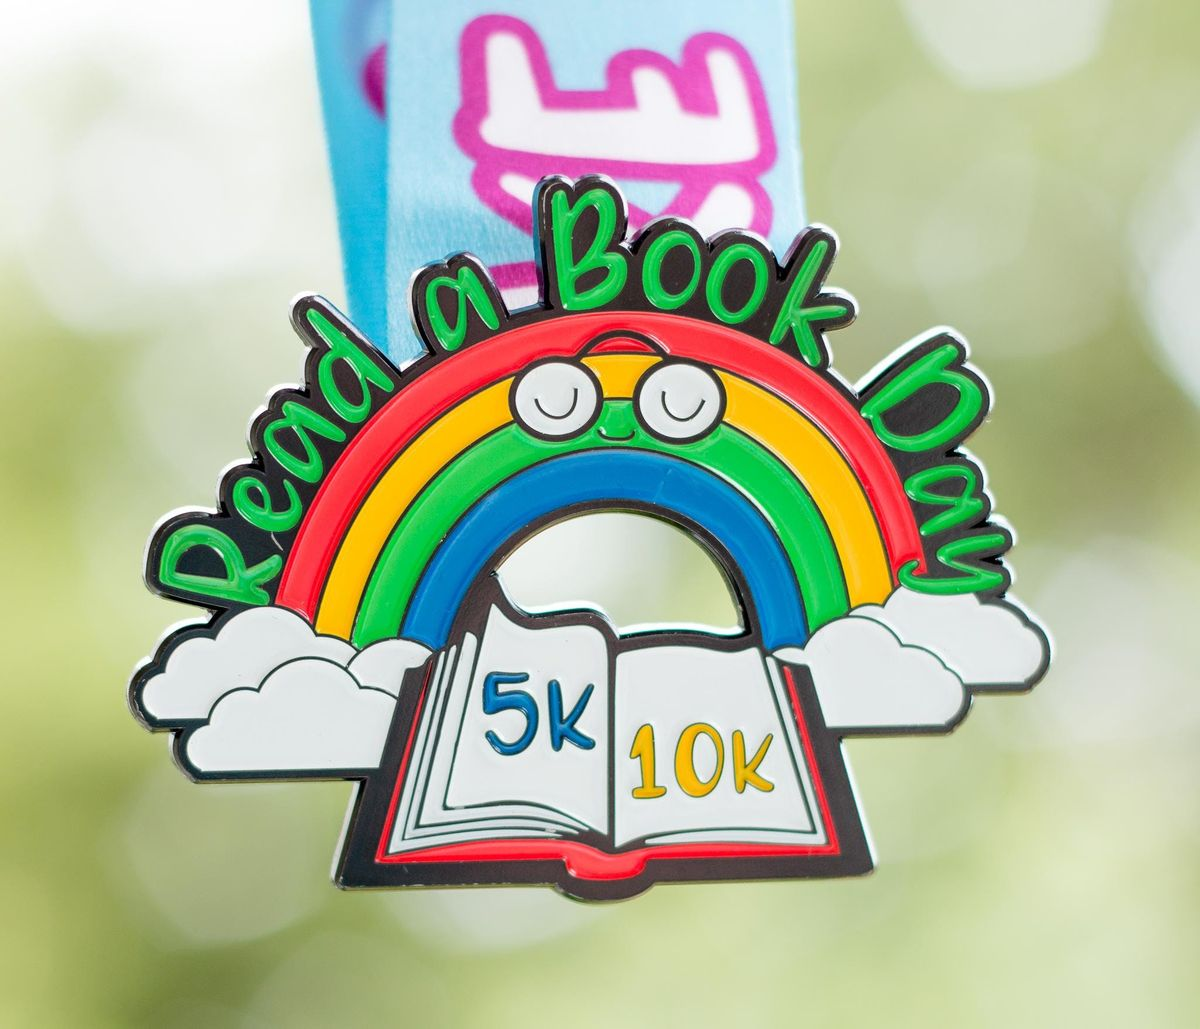 Now Only 10 Read a Book Day 5K & 10K - Take a Look Its in a Book - Austin